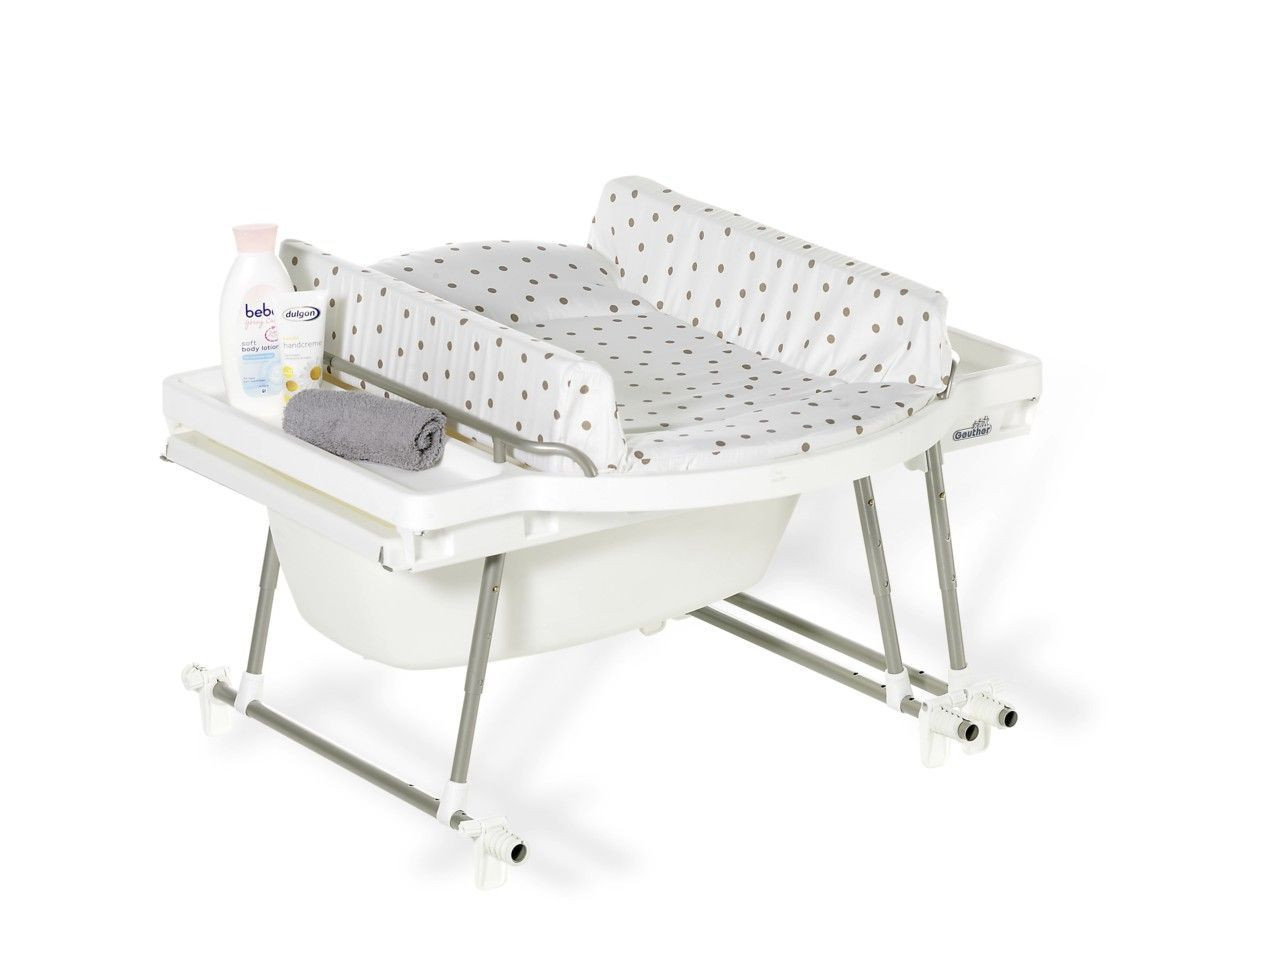 Ensemble baignoire table langer aqualino geuther bambinou - Table a langer pliable ...